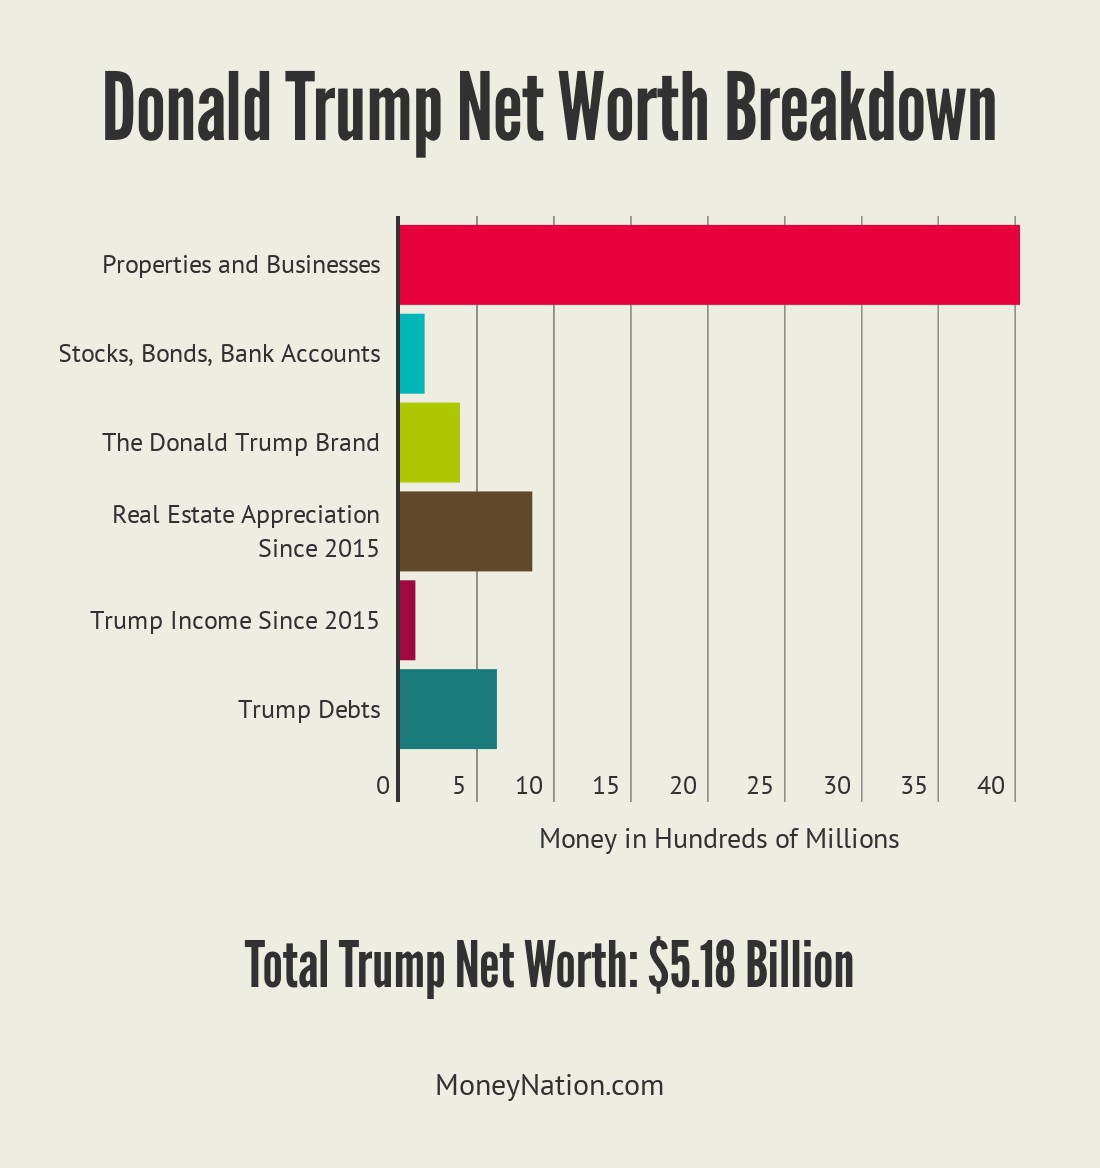 Breakdown of Donald Trump's Net Worth